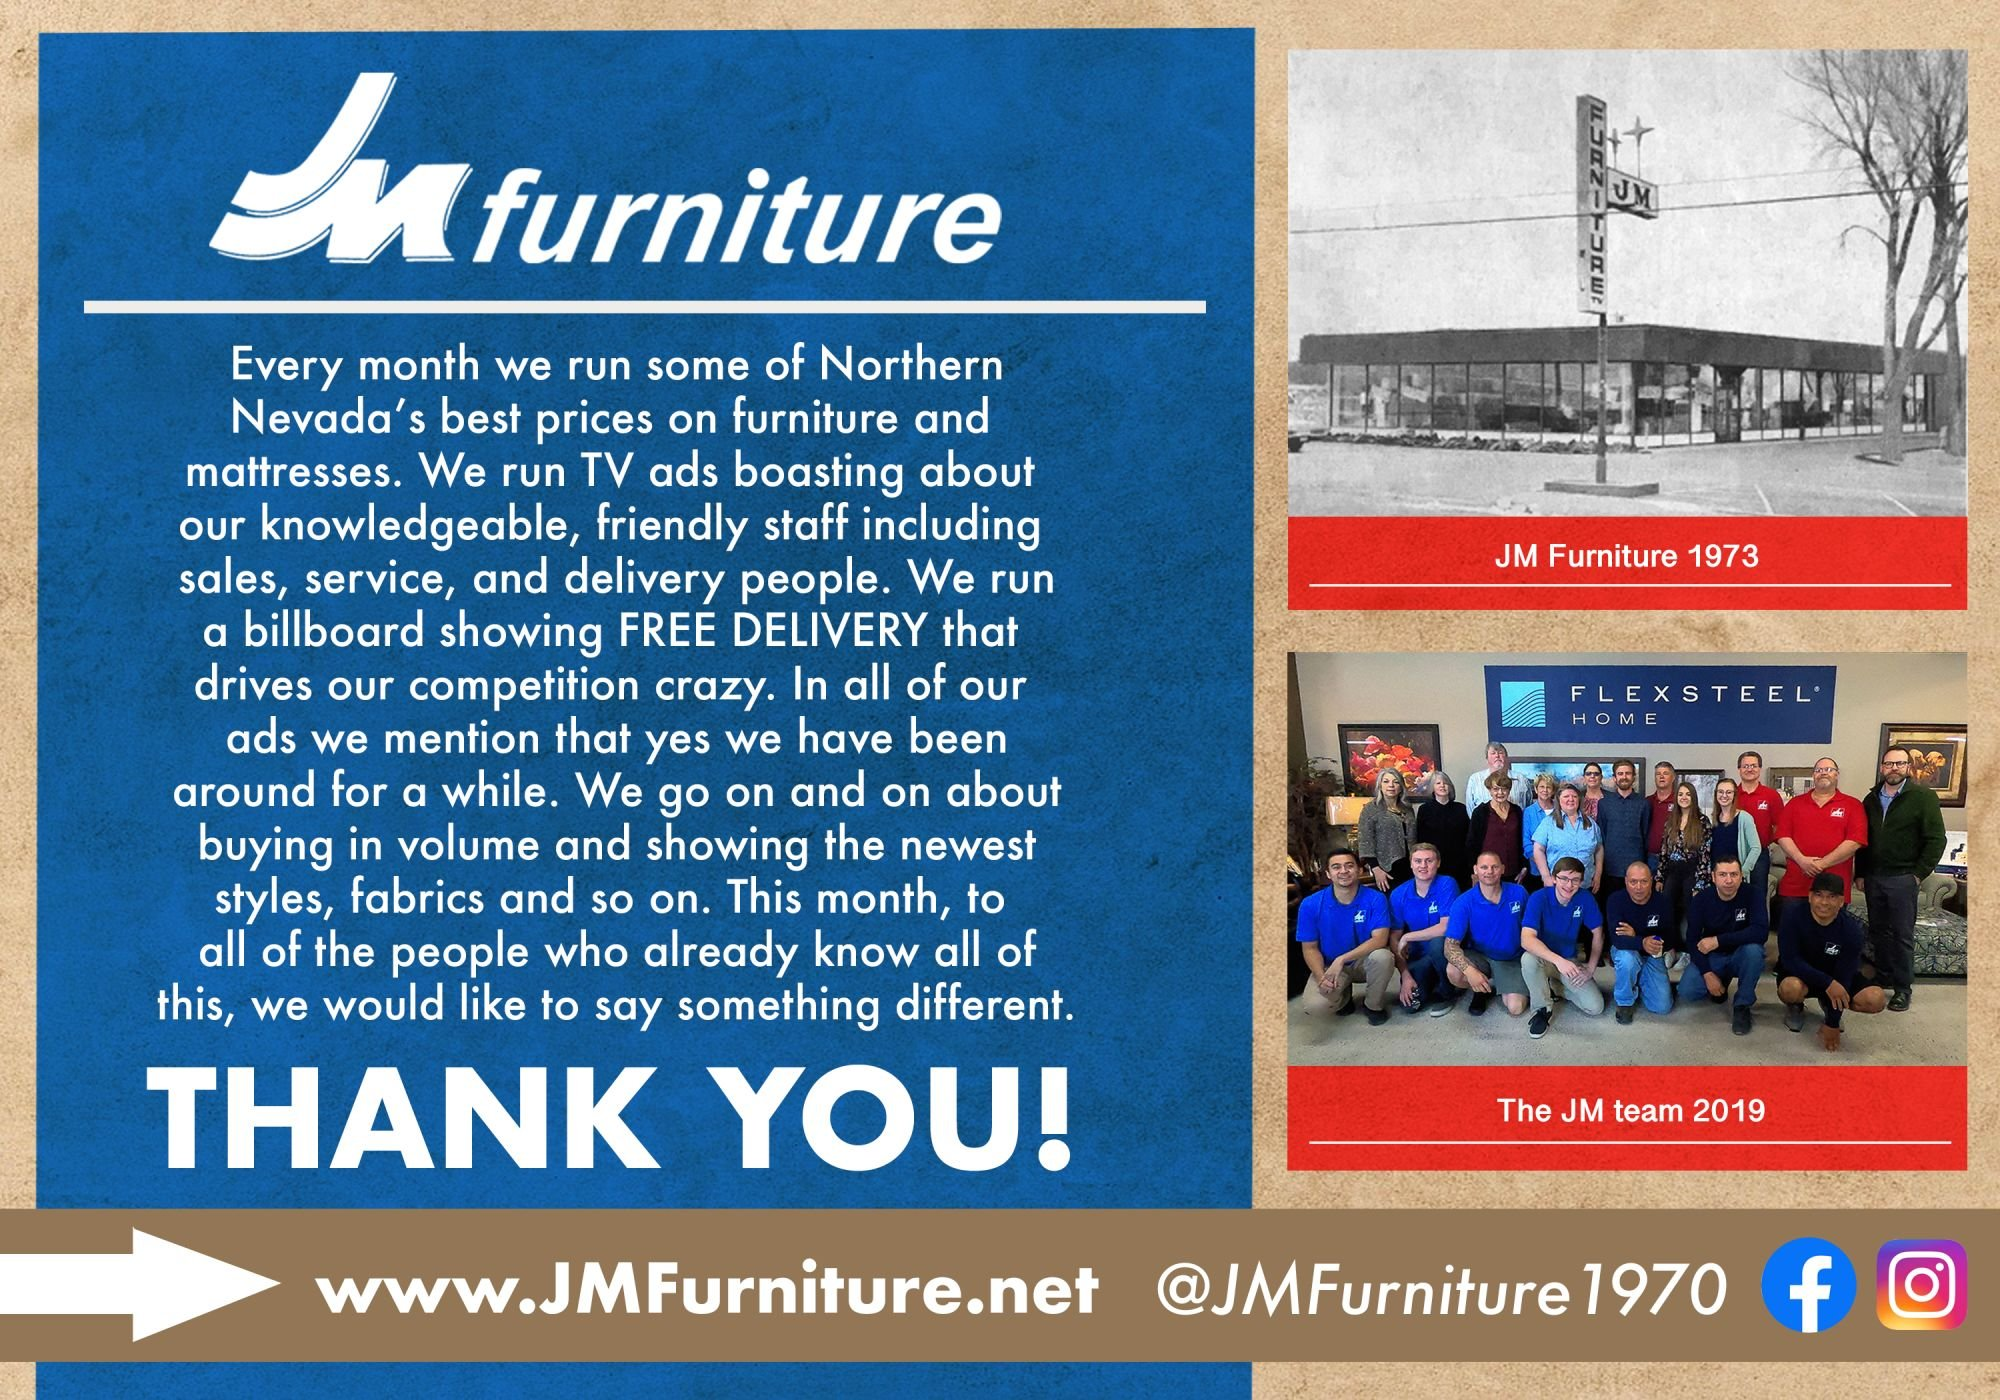 Thank You For Making Jm Furniture Carson City S 1 10 Years In A Row We Hope To Have Earned Your Vote Best Of 2019